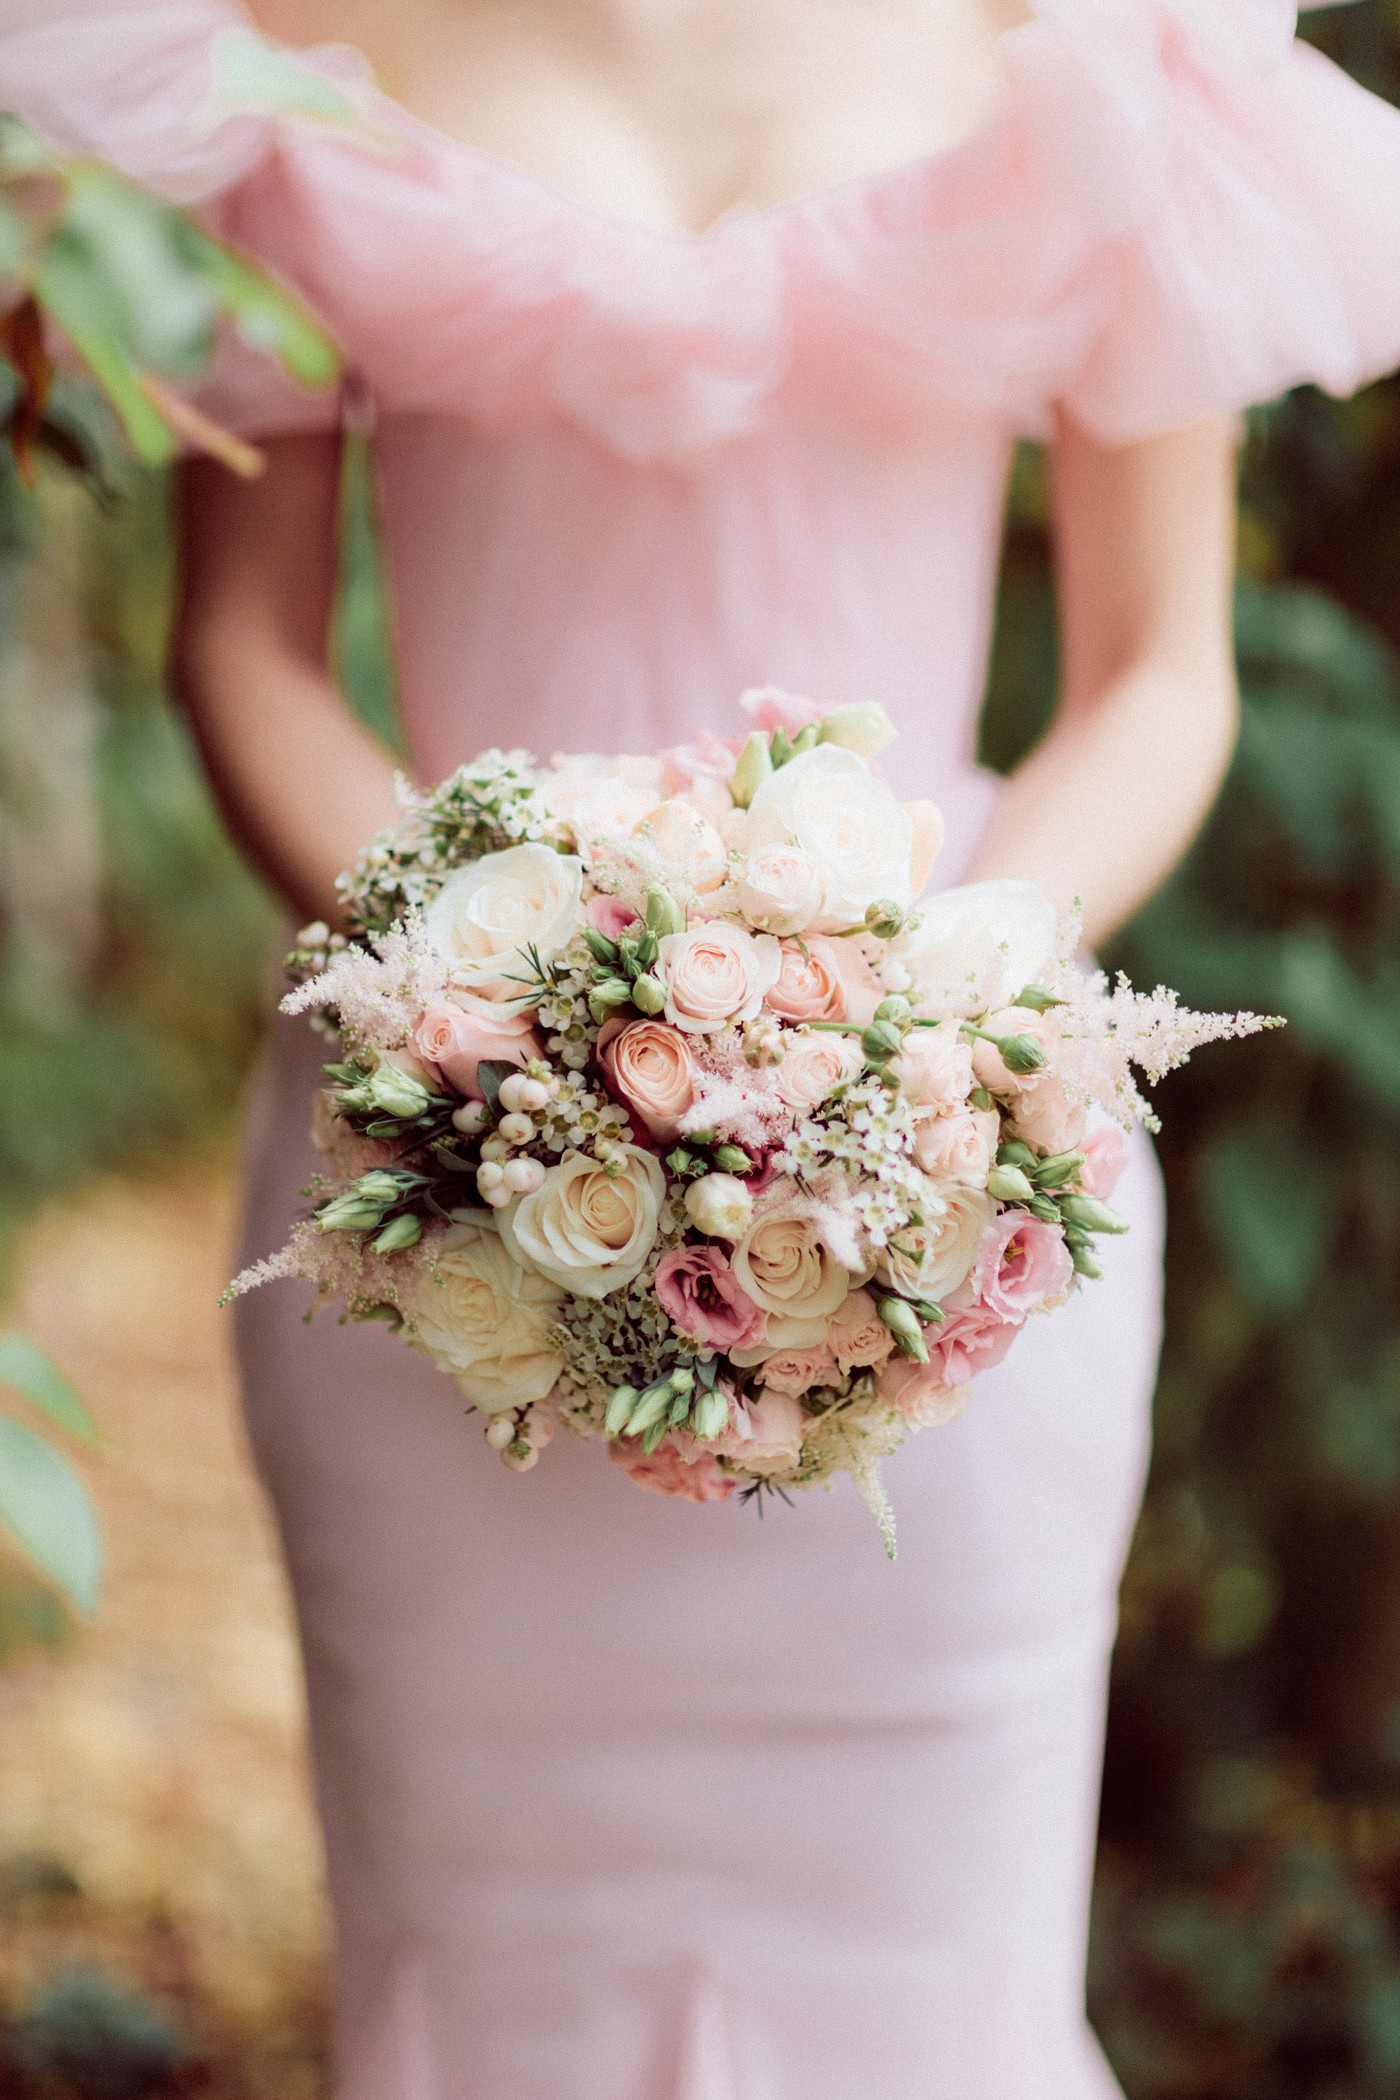 wedding, wedding planner, my fair lady, wedding ideas, wedding inspiration, get the look, wedding tips, romance, pink, blush